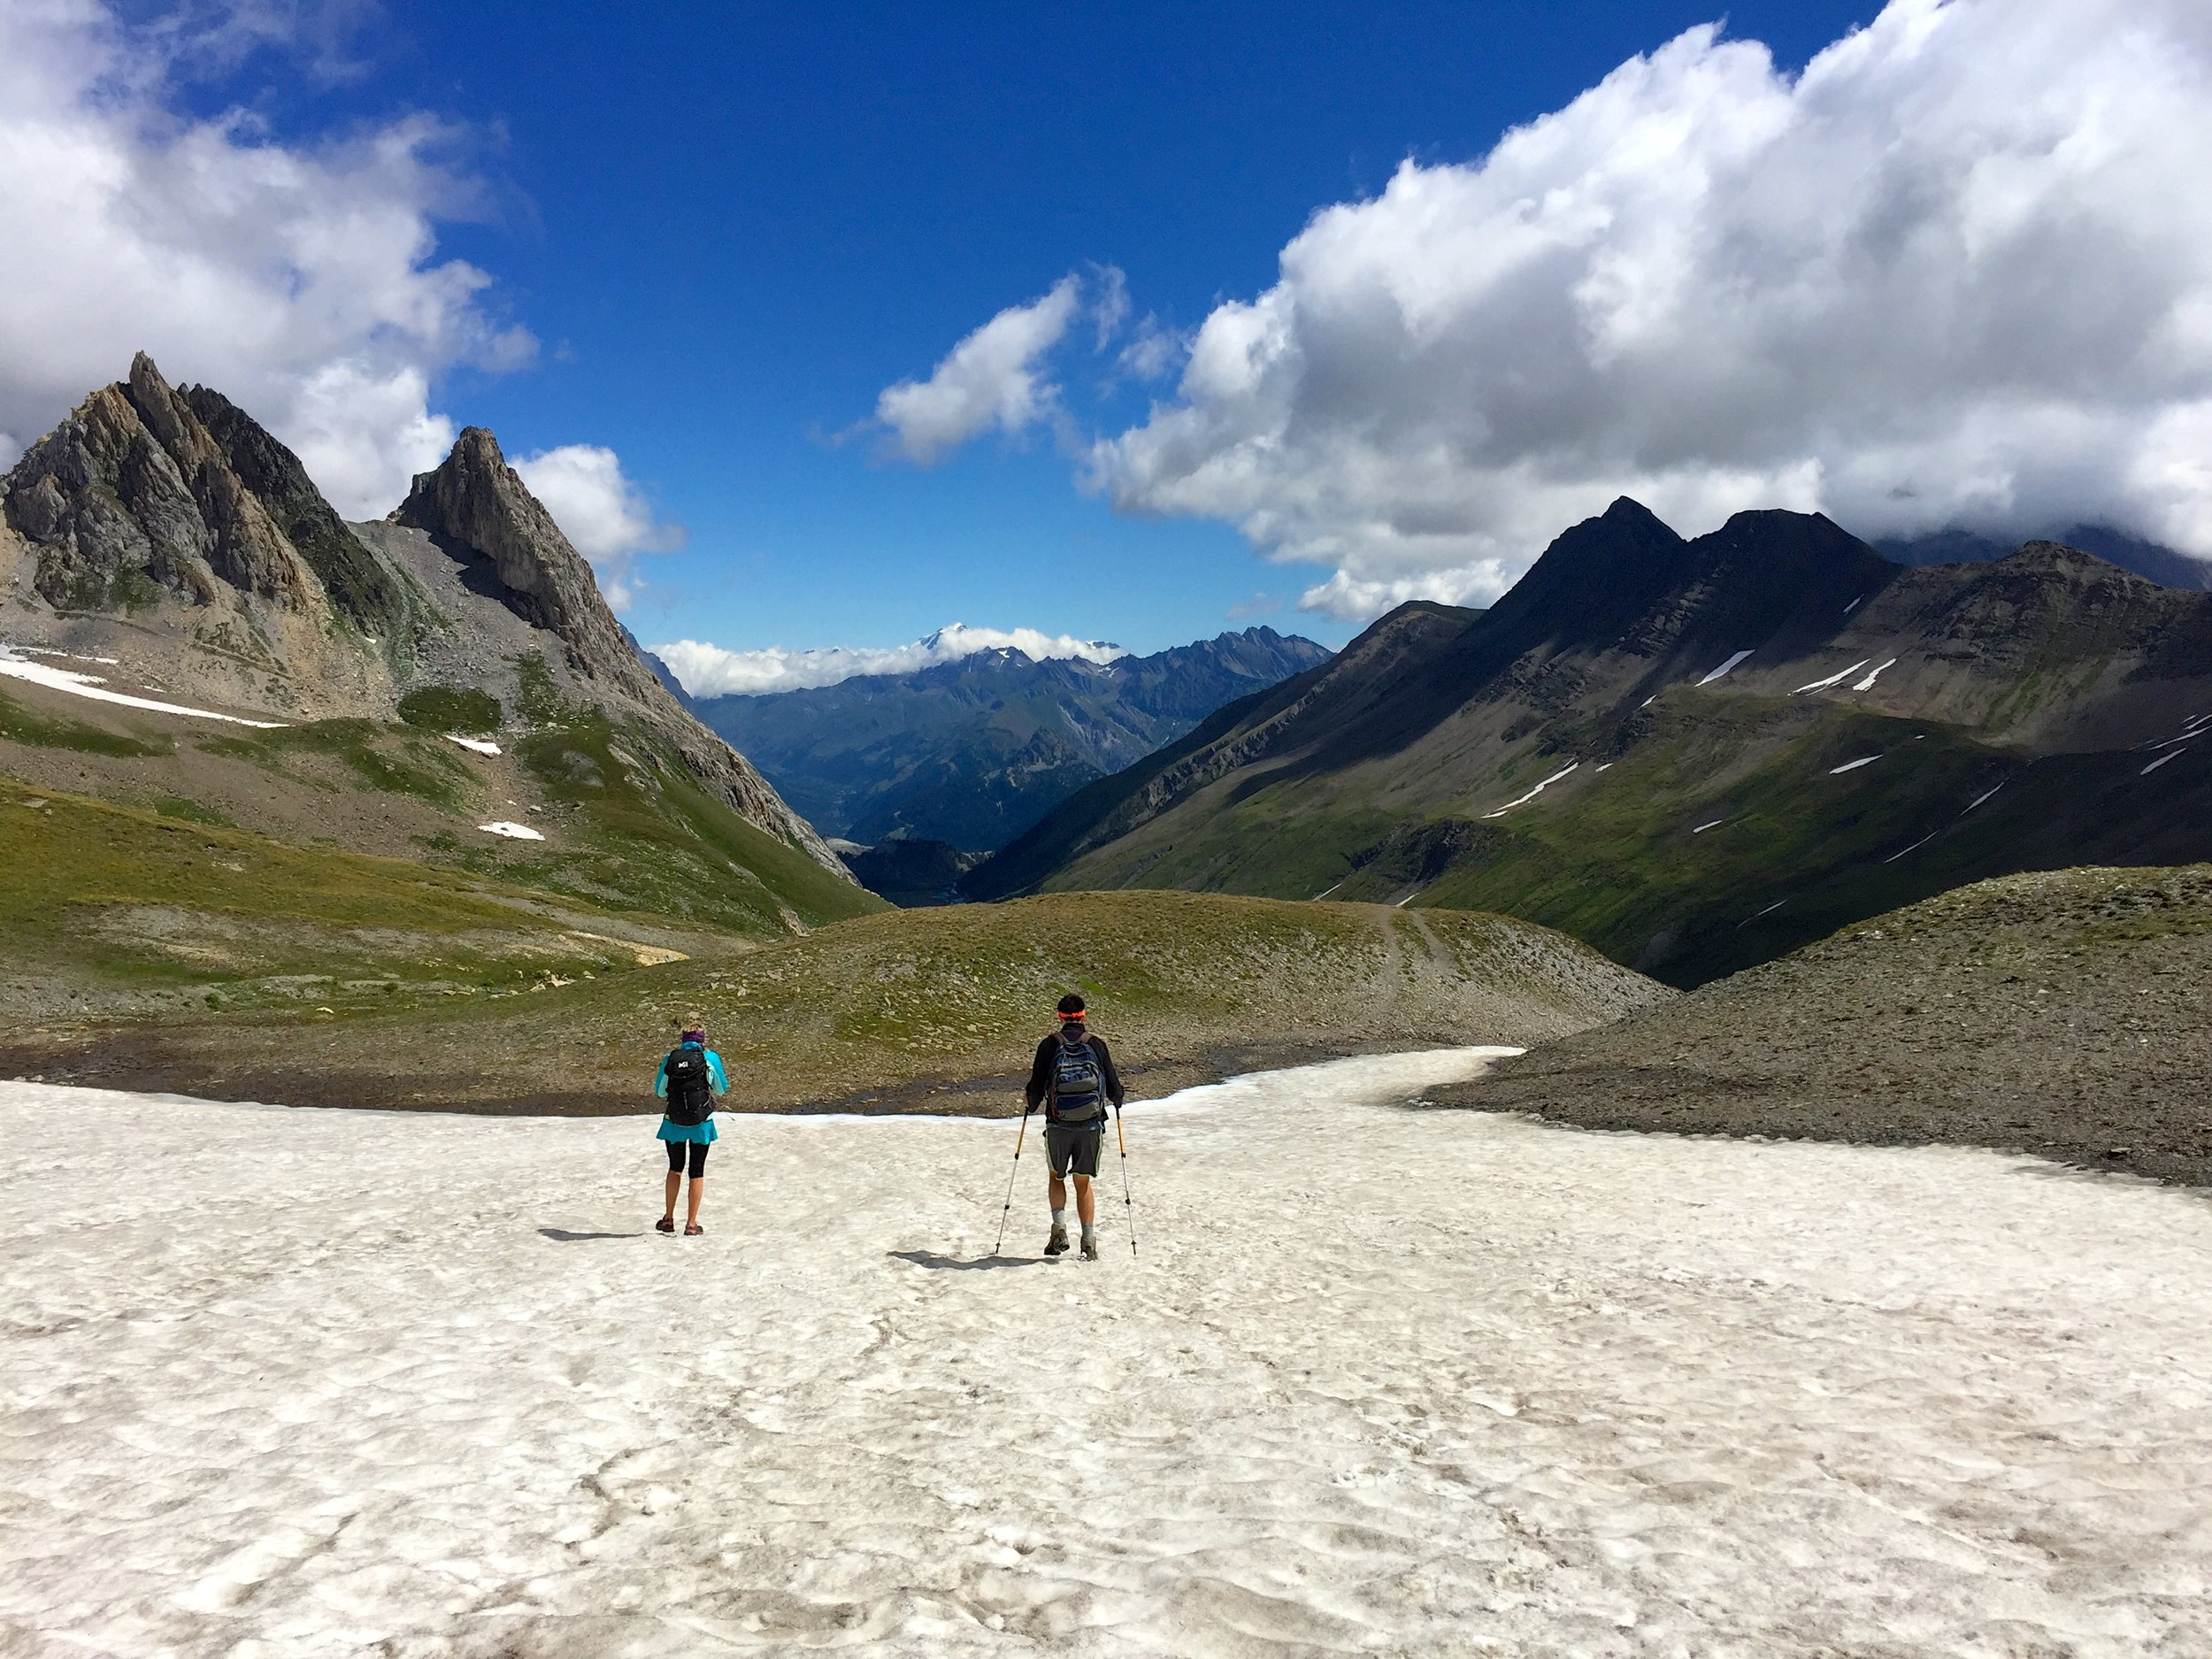 Even in August you encounter a few snowfields near the passes. This is just past Grand Col Ferret.